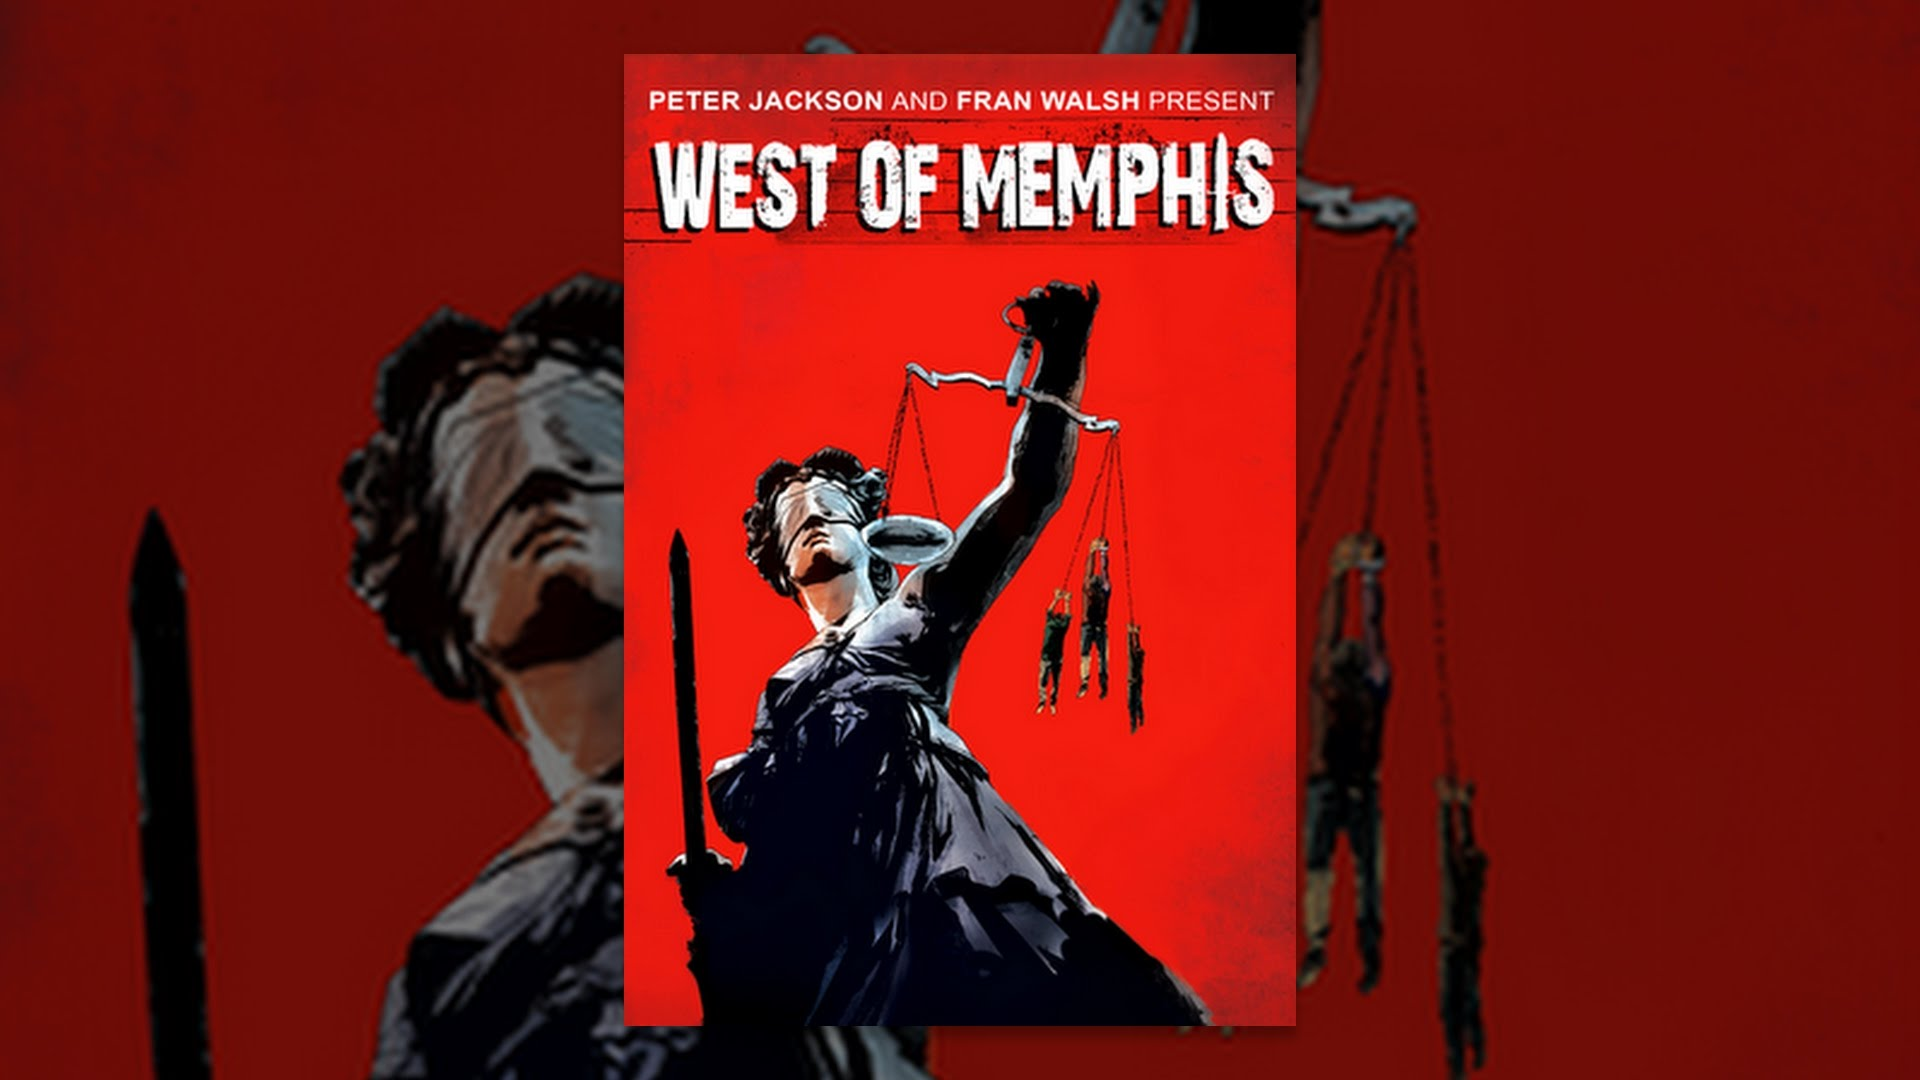 West of memphis free online